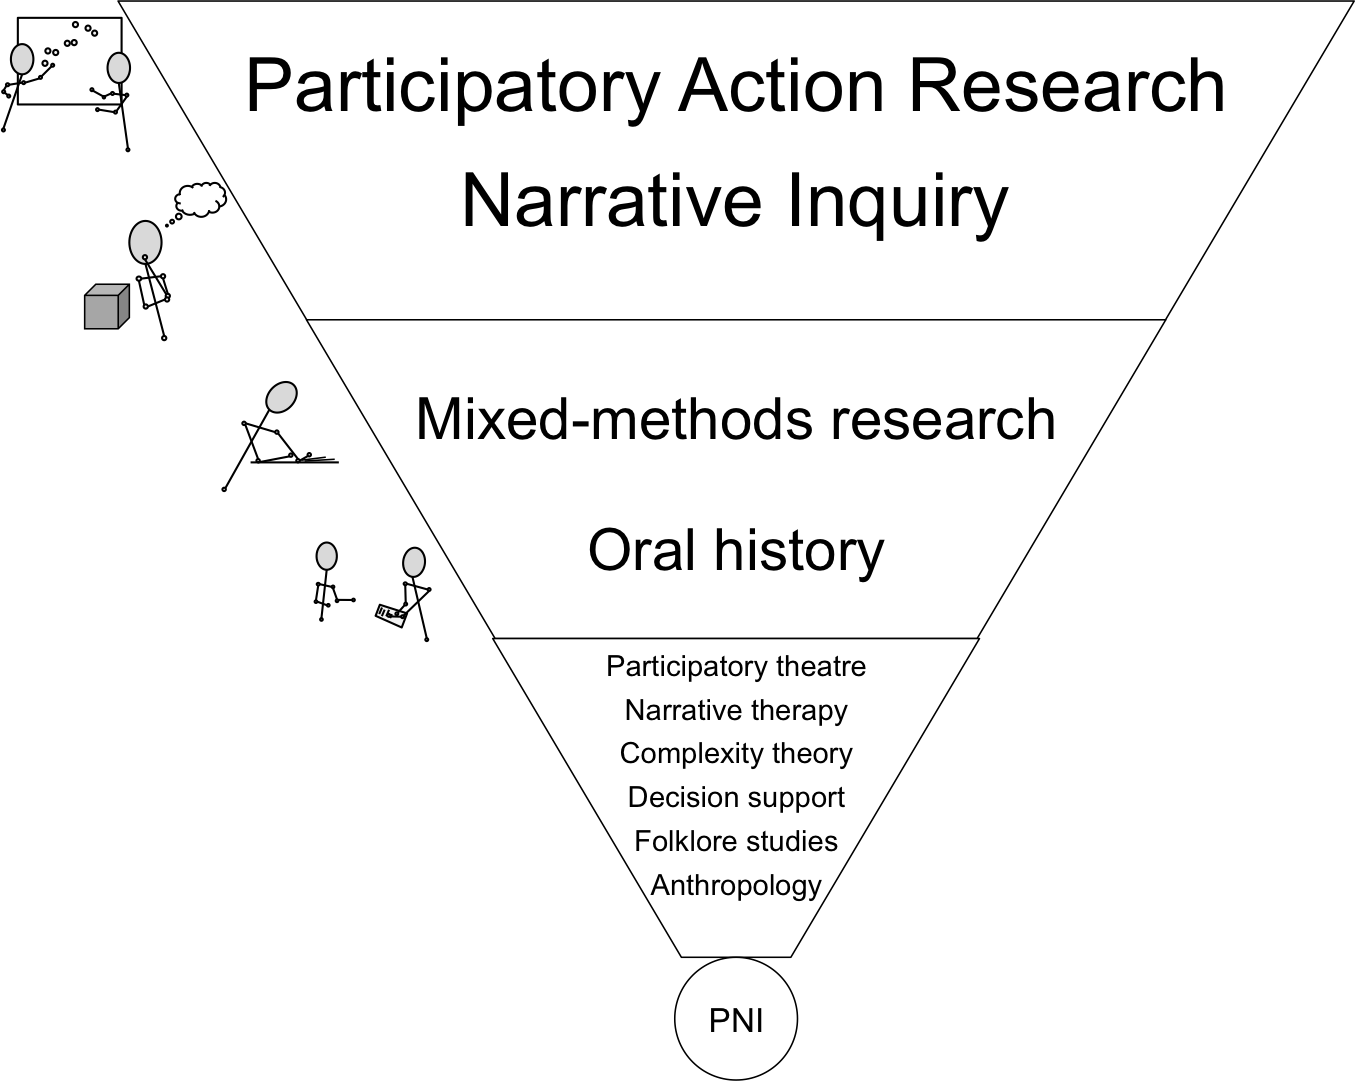 PNI comes from: Participatory Action Research, Narrative Inquiry, Mixed-methods Research, Oral History, Participatory Theatre, Narrative Therapy, Complexity theory, Decision Support, Folklore studies, Anthropology